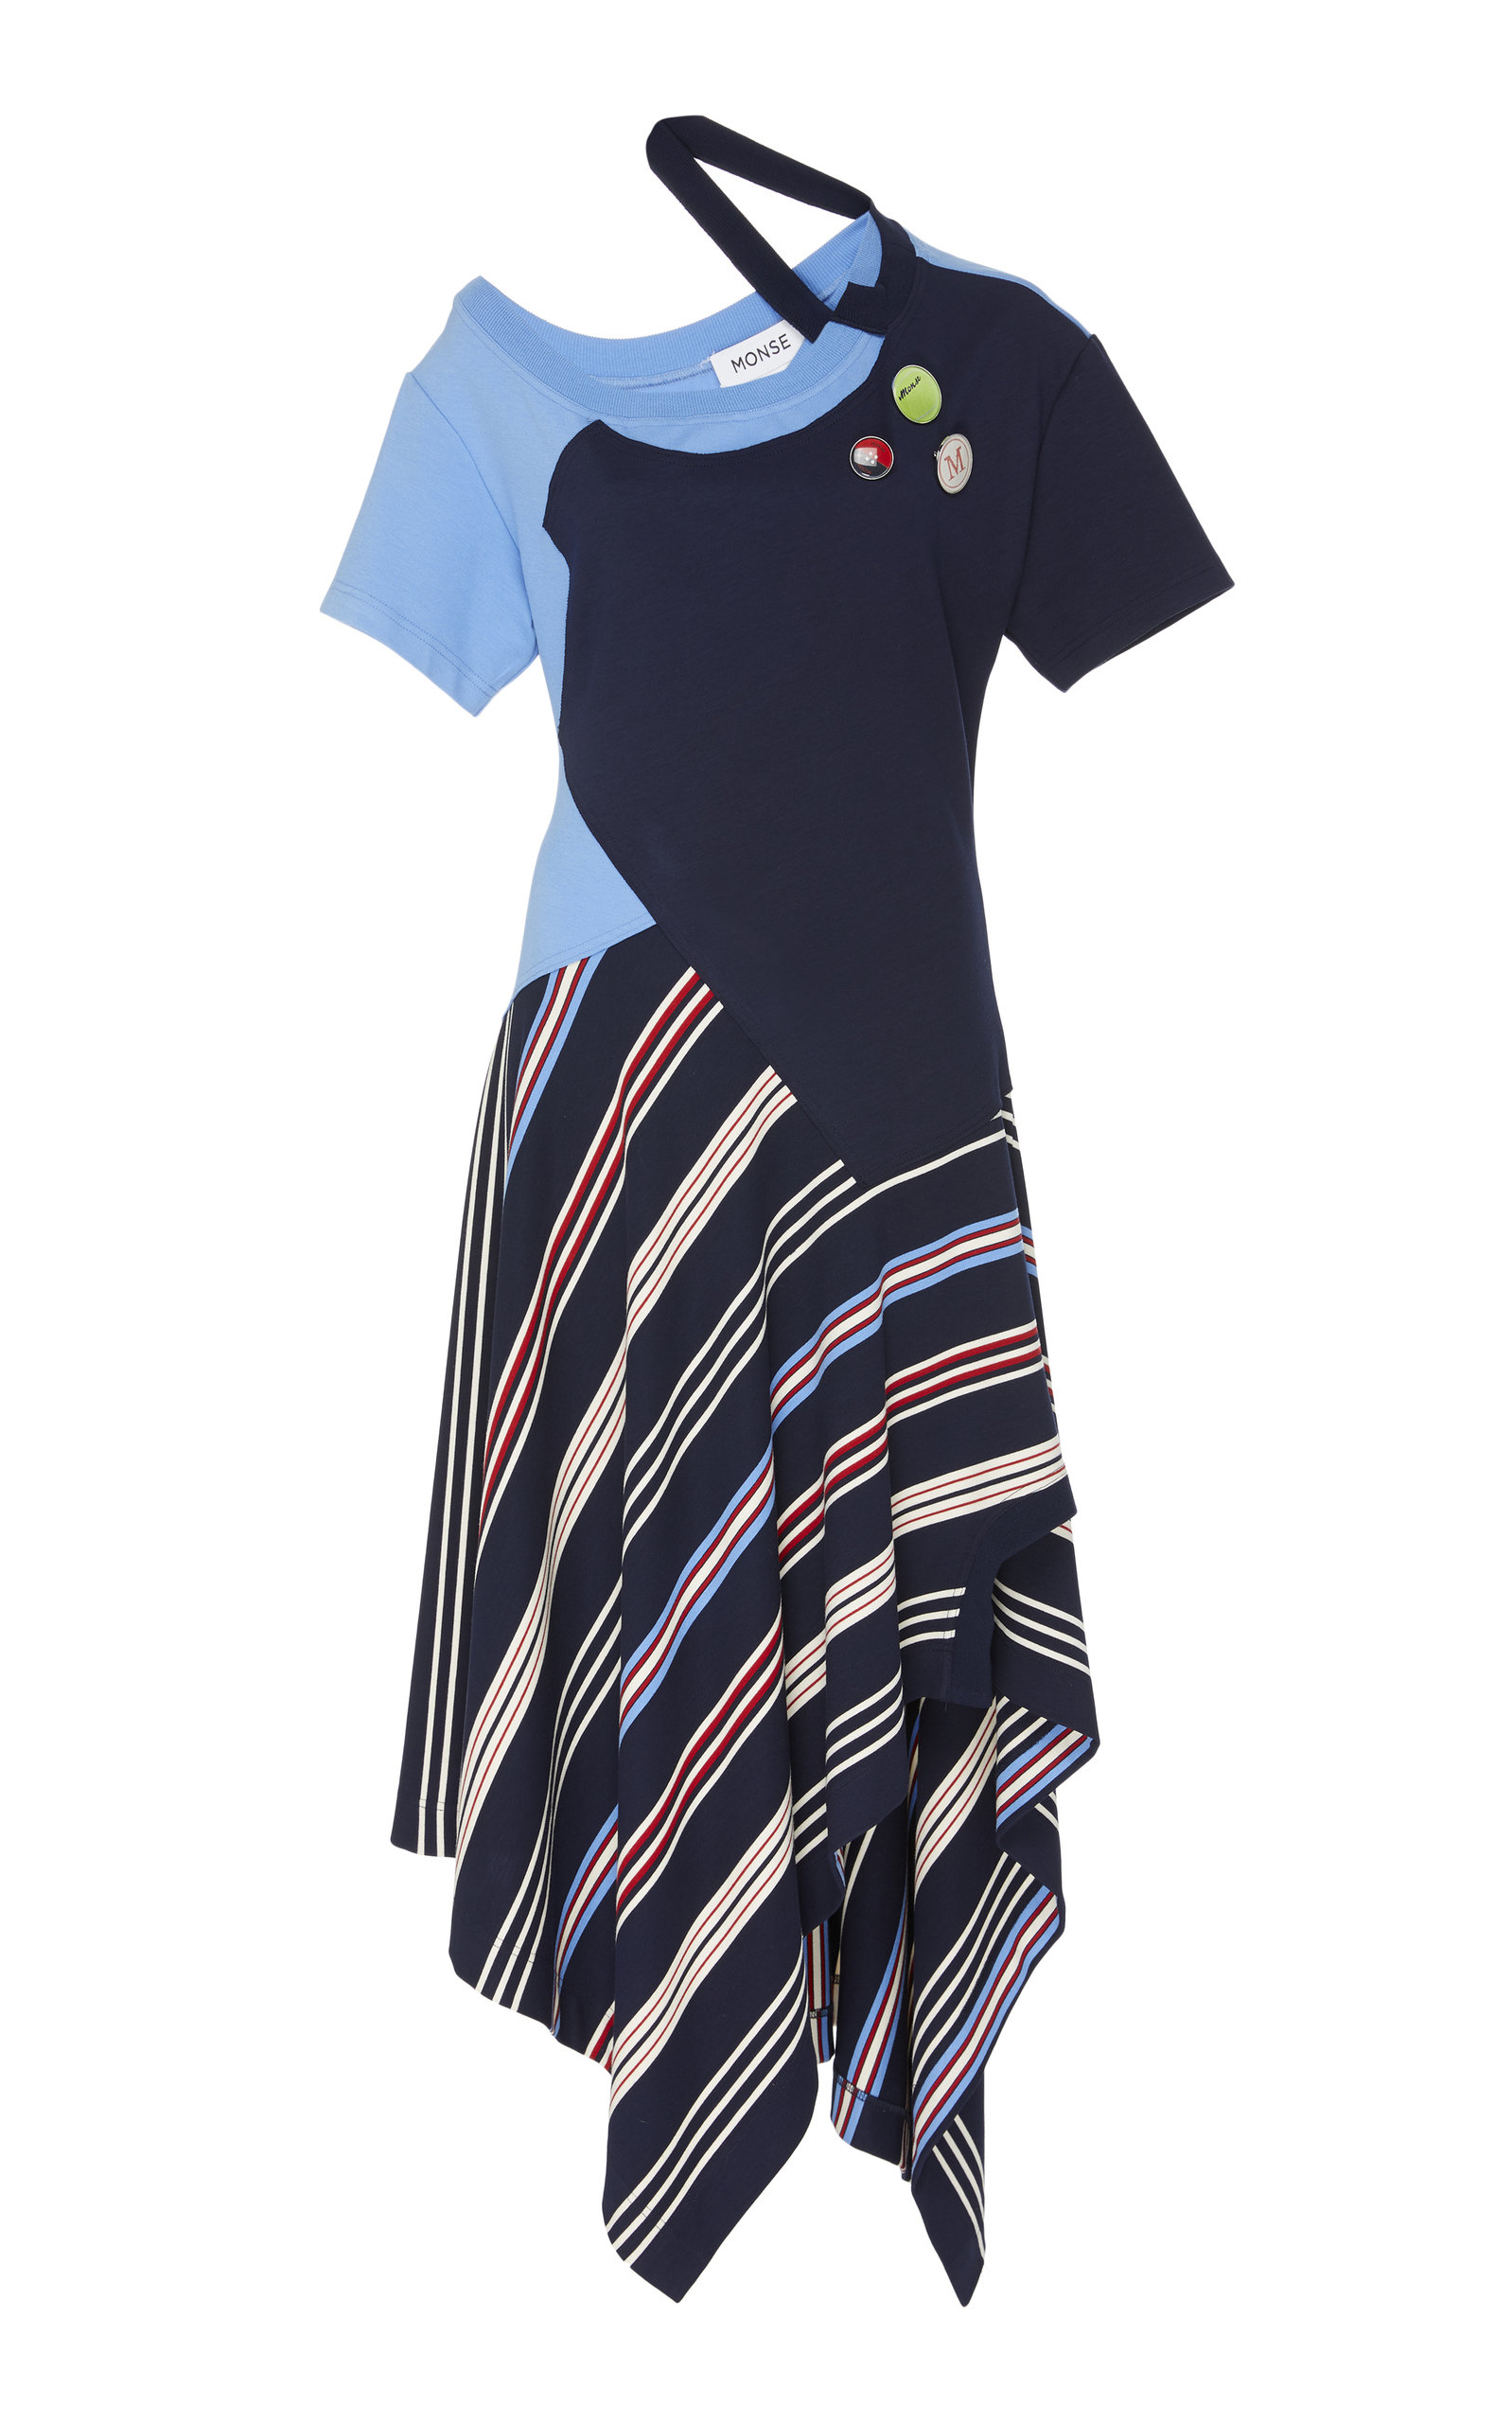 Striped Deconstructed Jersey T Shirt Dress By Monse Moda Operandi